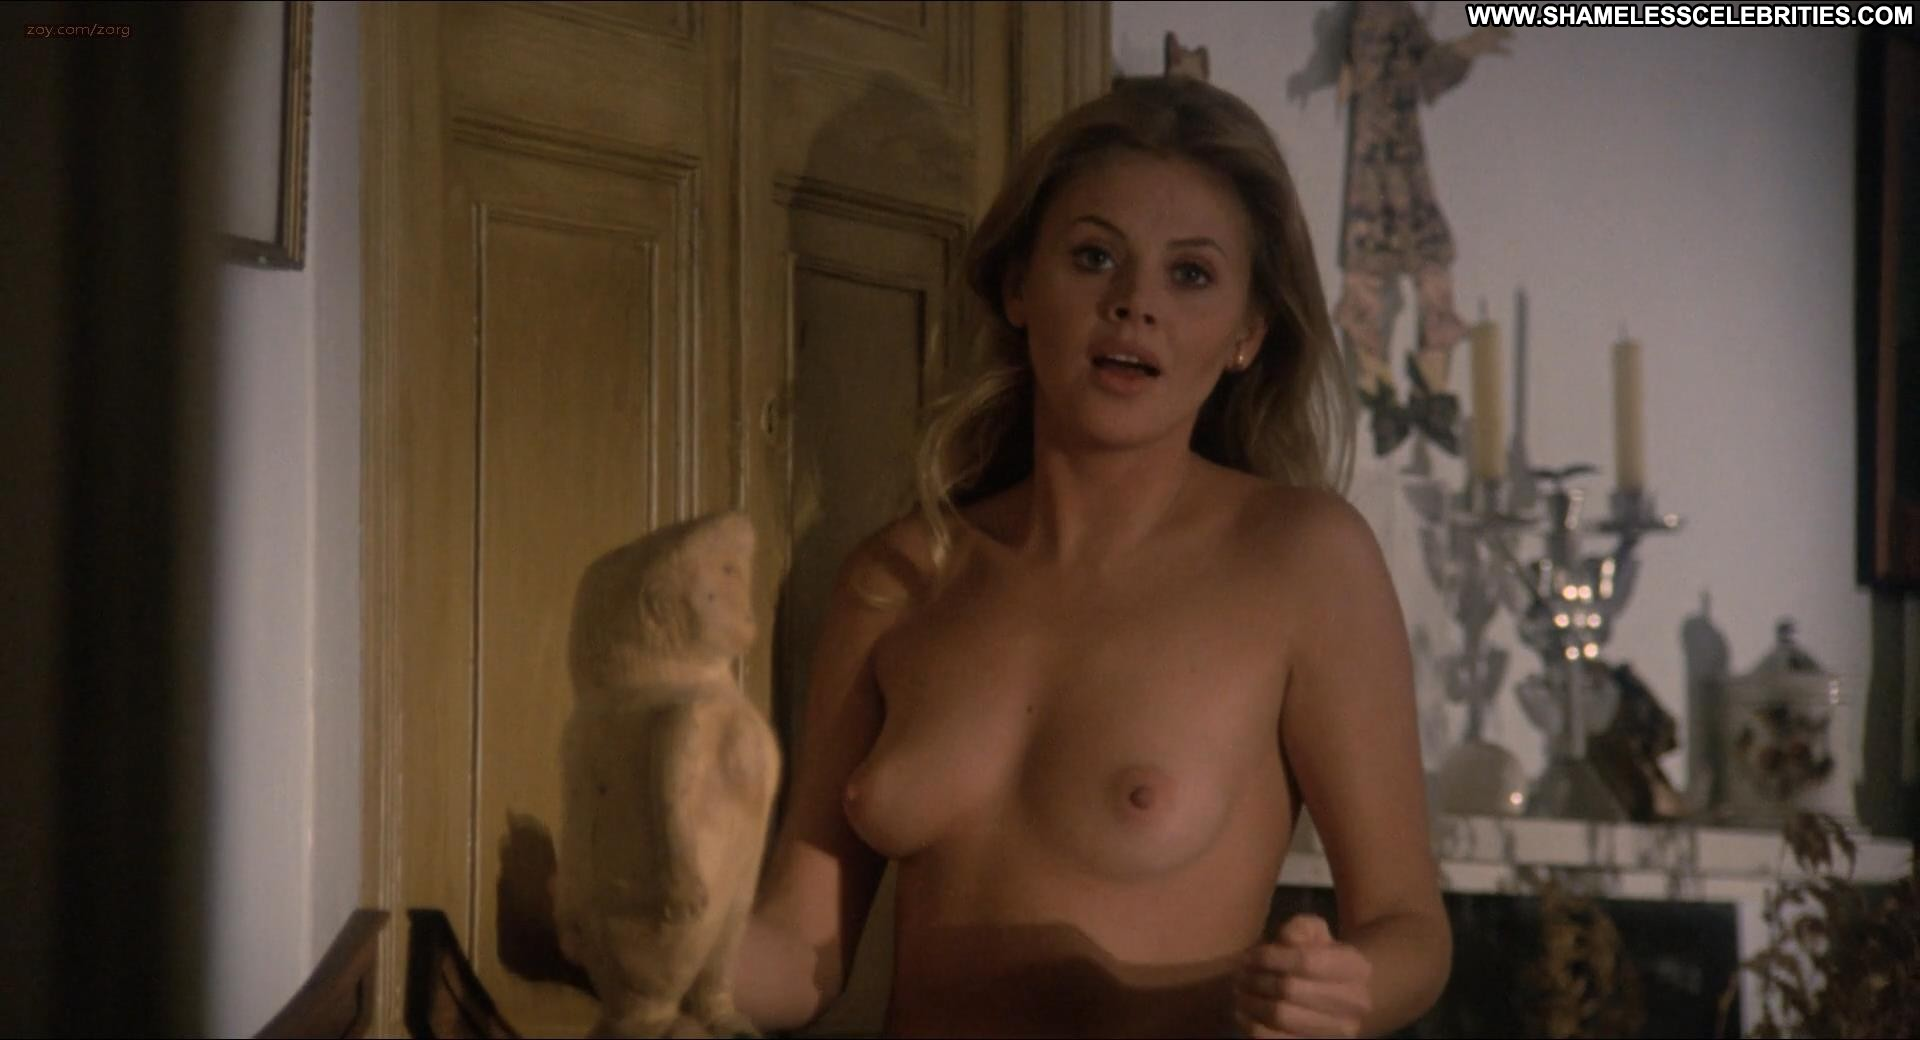 SIMPLY FUCKING diane farr nude this